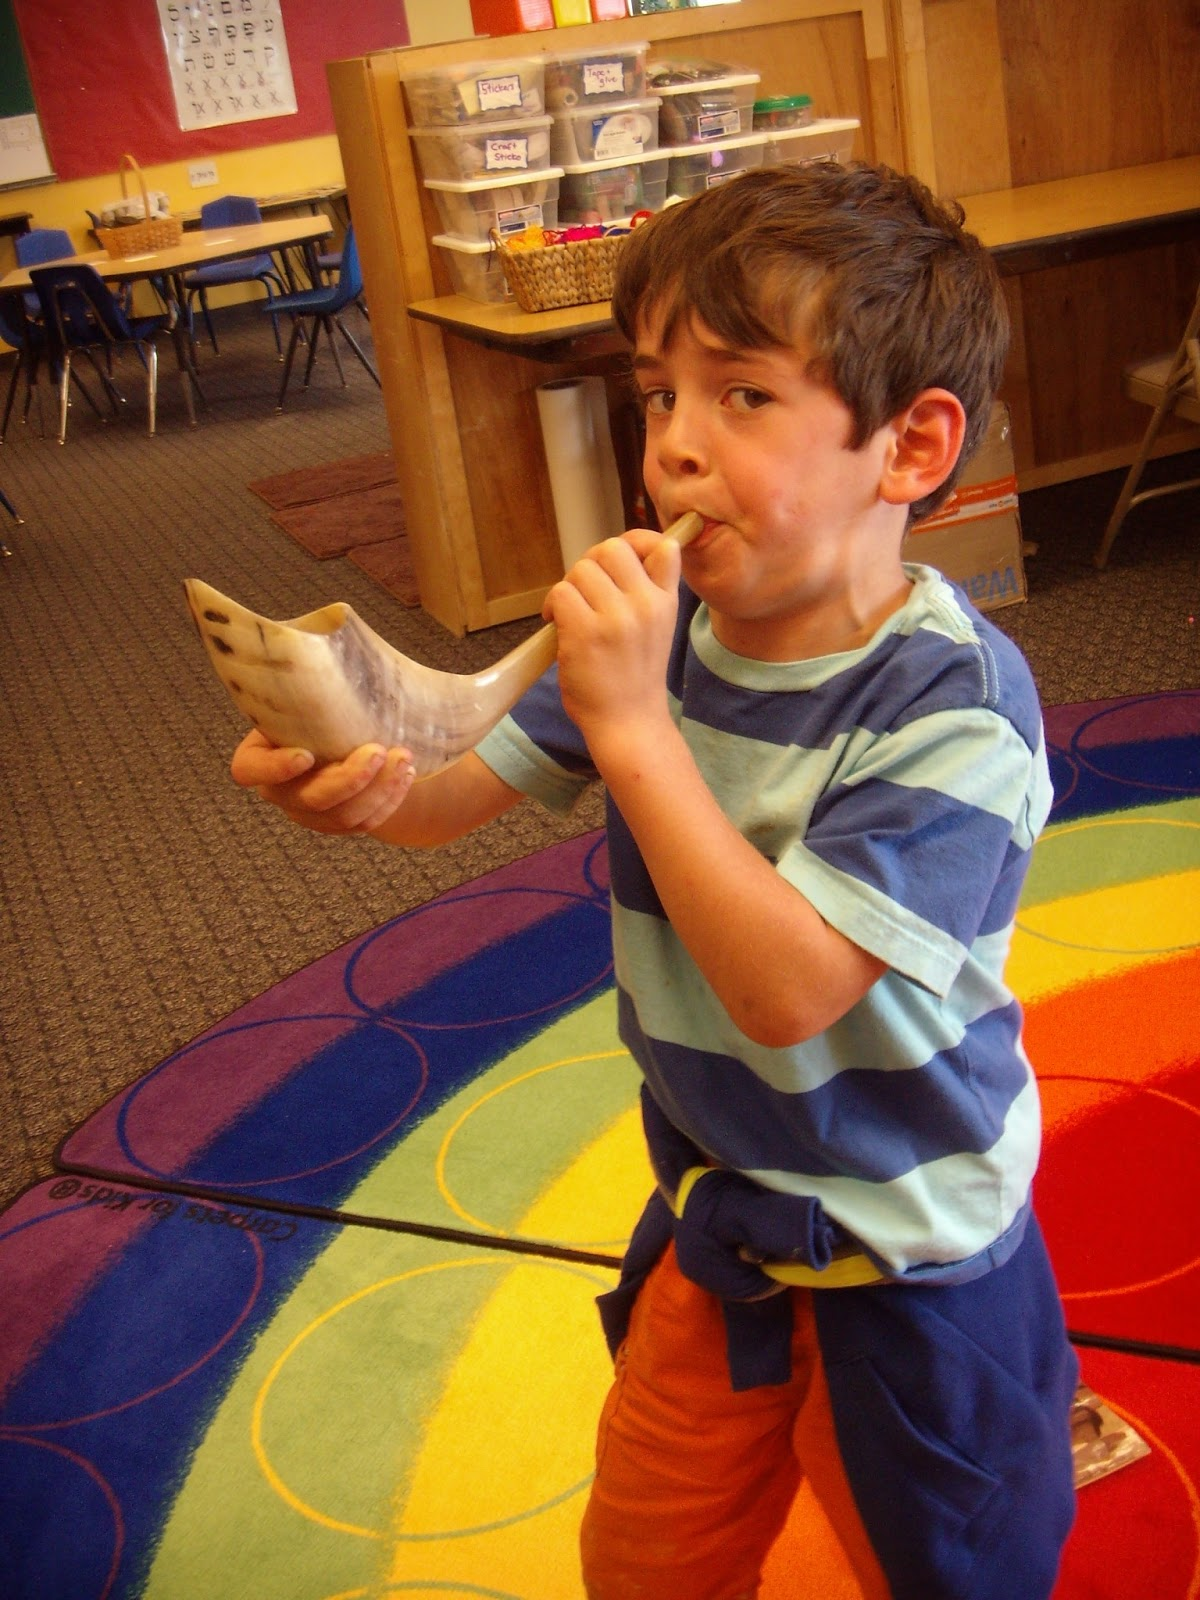 Nitzan—A Network for Renewing Jewish Learning After School